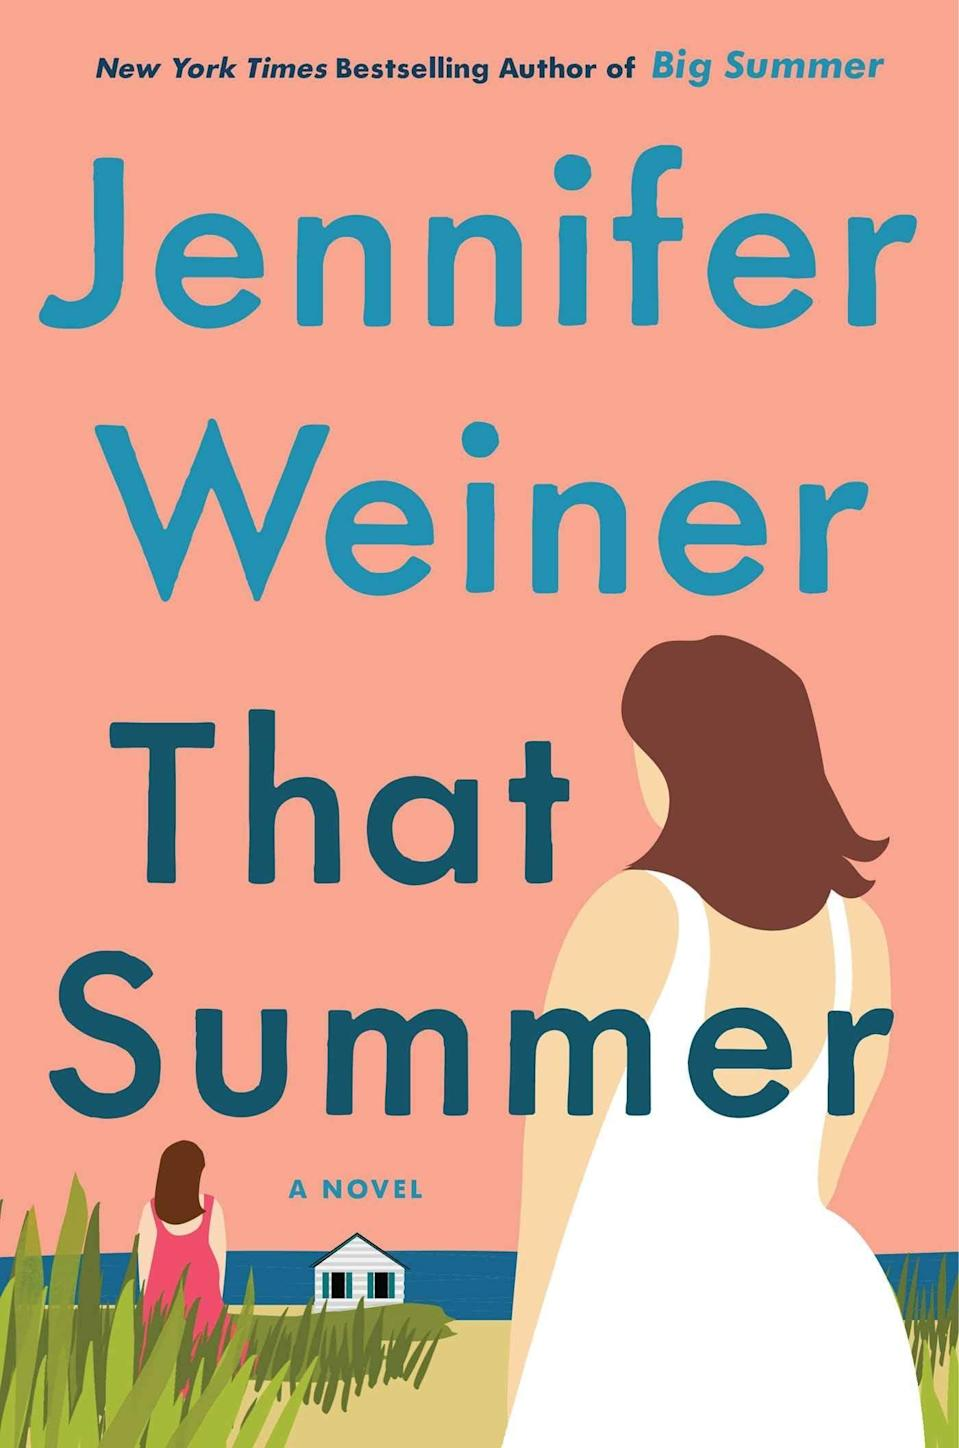 <p>In <span><strong>That Summer</strong></span> by Jennifer Weiner, a woman named Daisy Shoemaker becomes fascinated by the life of a woman whose emails she begins receiving by mistake. Diana Starling's life as a high-powered businesswoman seems exciting and foreign compared to Daisy's life as a suburban mom. However, there's more to Diana than meets the eye, and Daisy soon realizes their connection has nothing to do with fate.</p> <p><em>Out May 11</em></p>